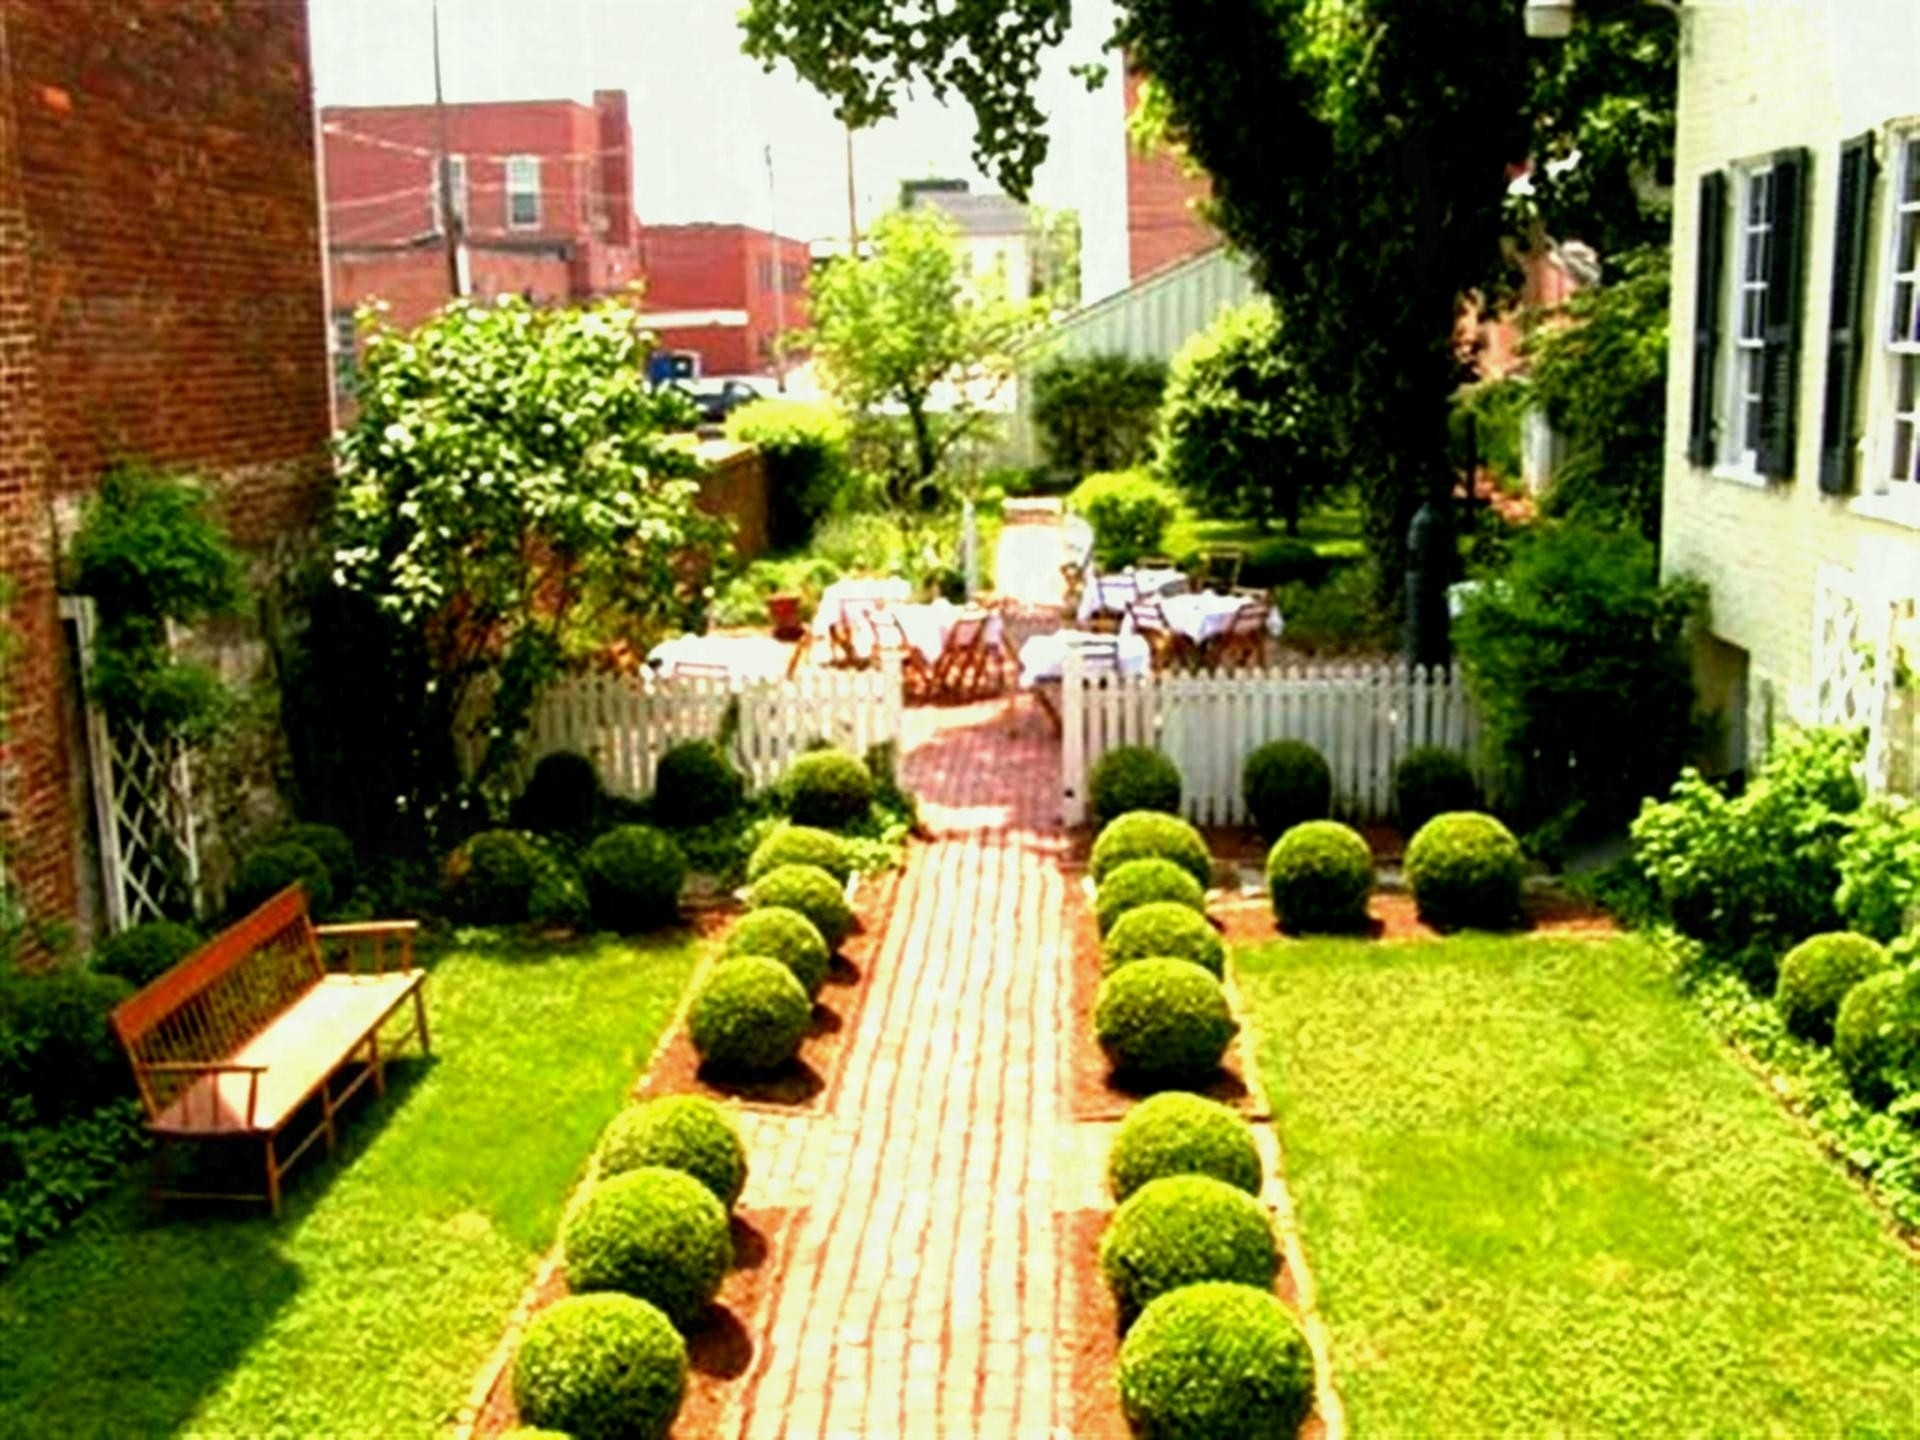 Home Garden Designs Ideas Design Pictures Vegetable India S In Sri within Home Garden Design Pictures India